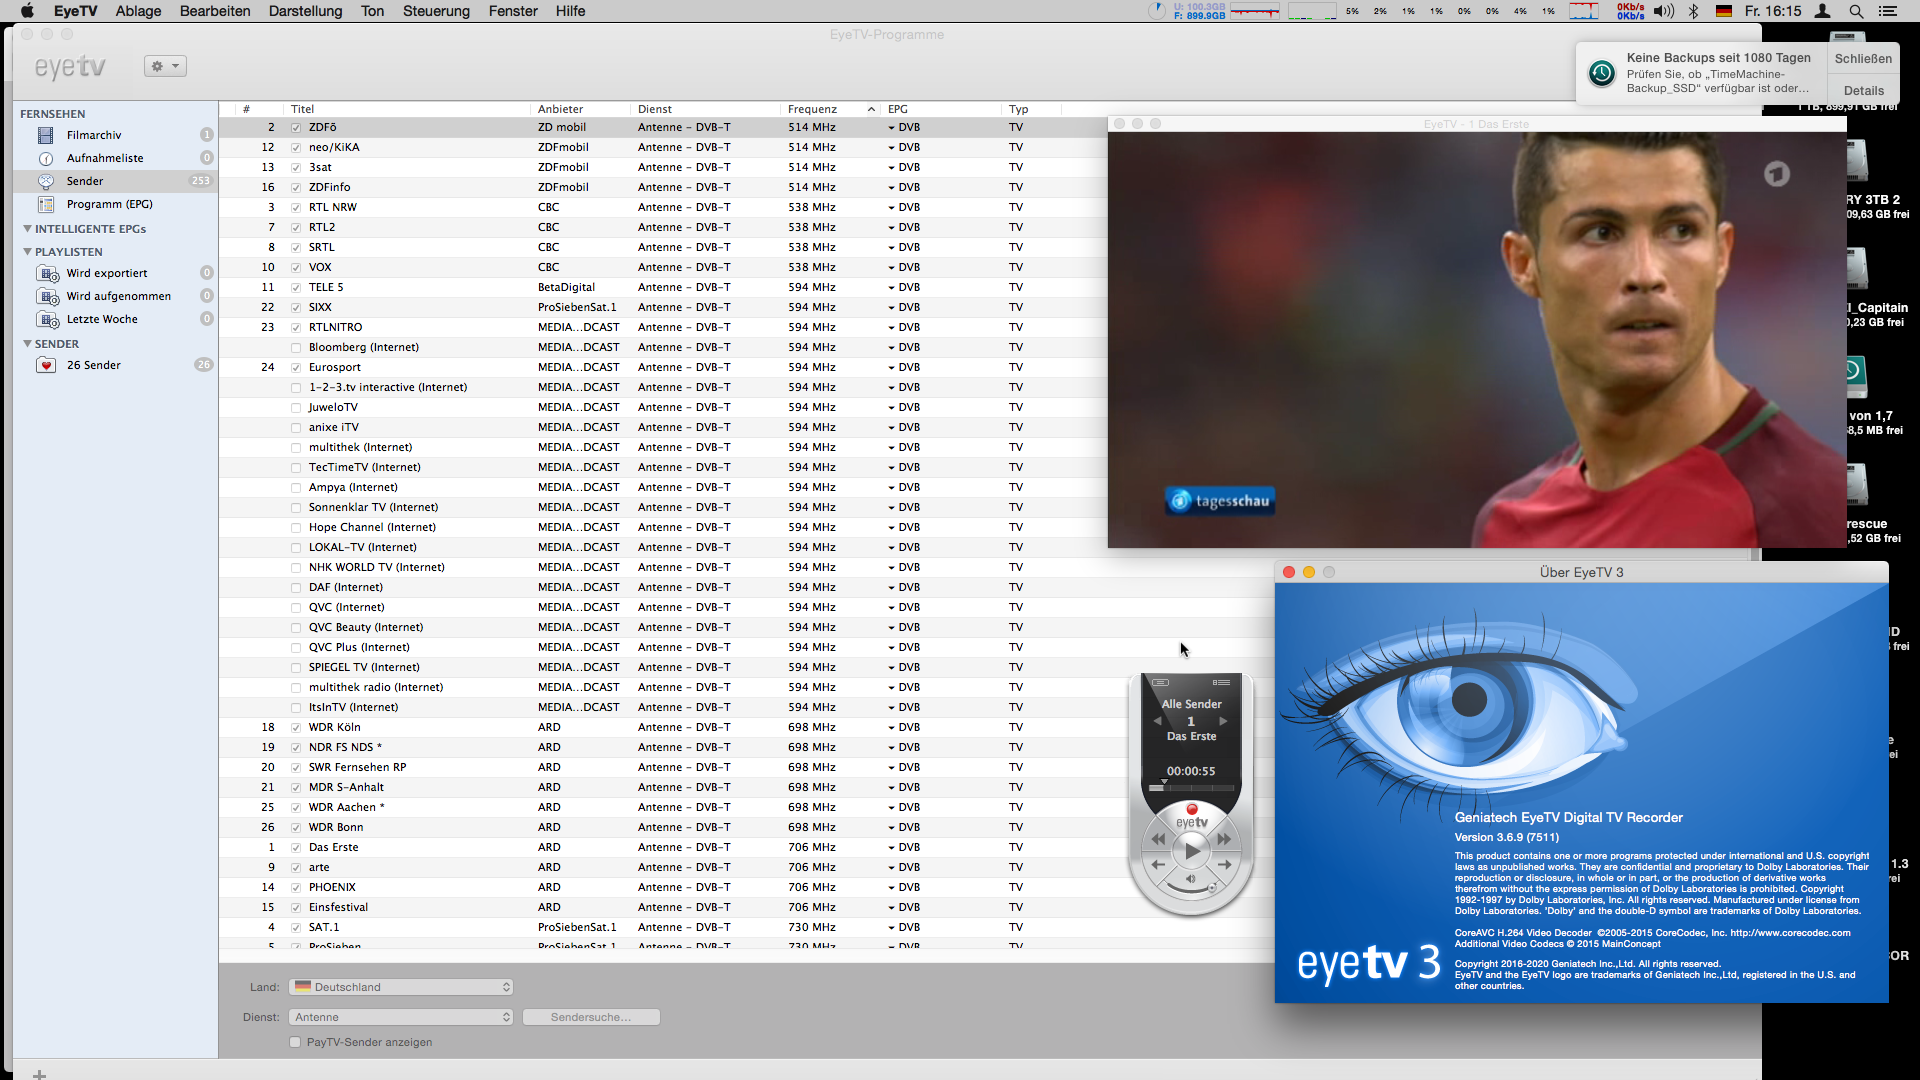 MacOS Sierra DP1 and EyeTV with EyeTV Hybrid - Discussions